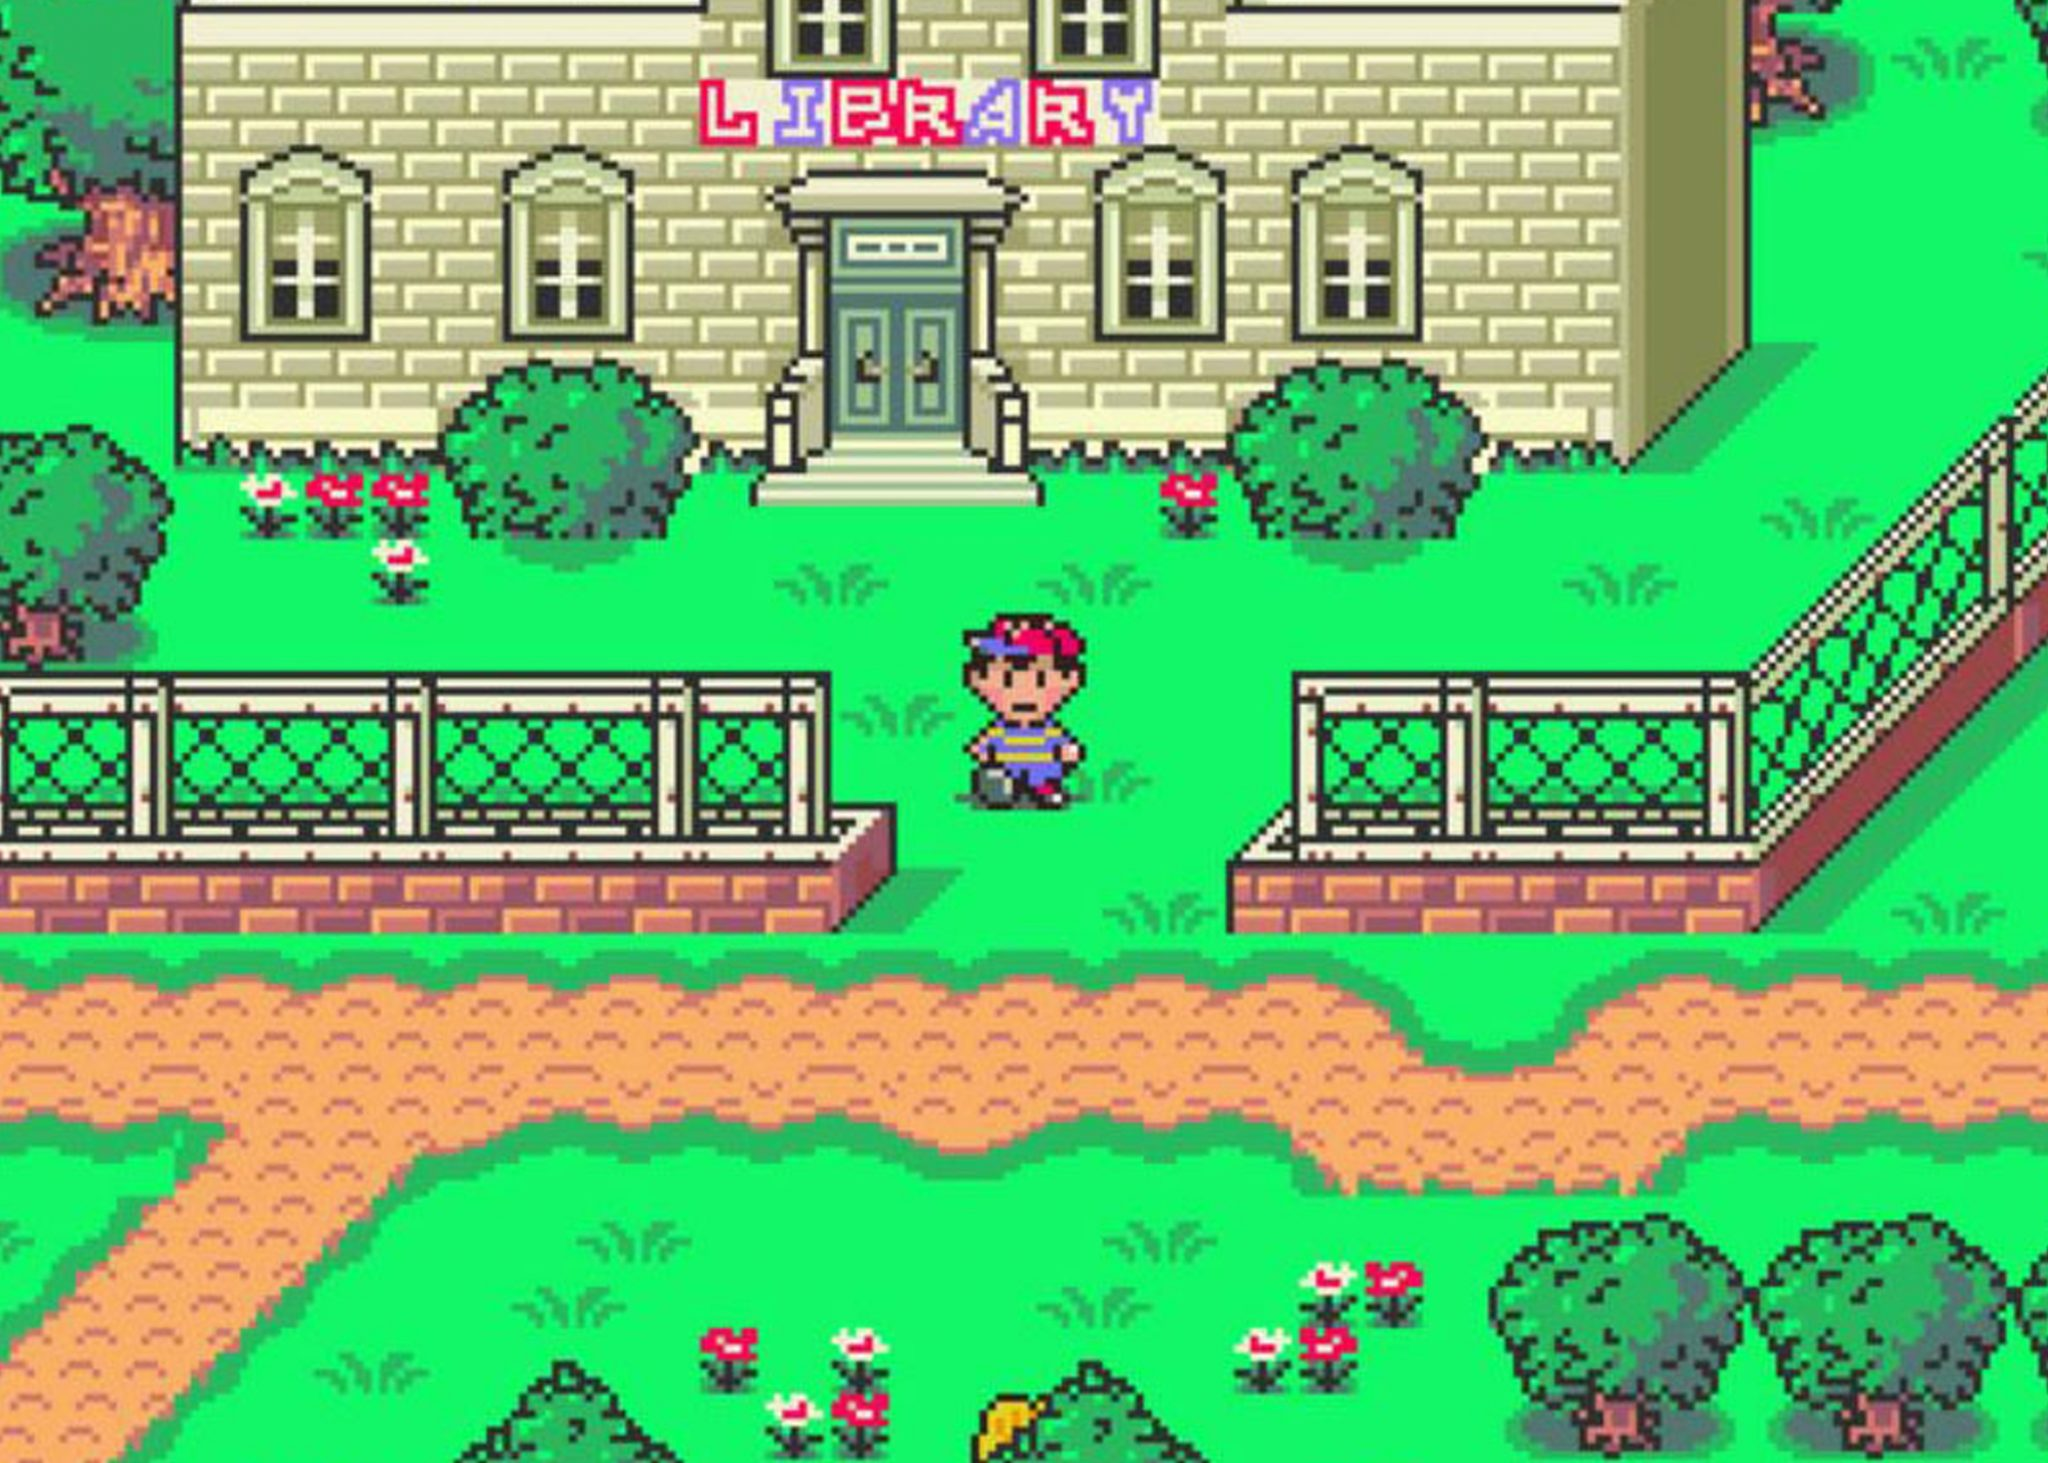 Still looking for a decent (cheap) copy of Earthbound.